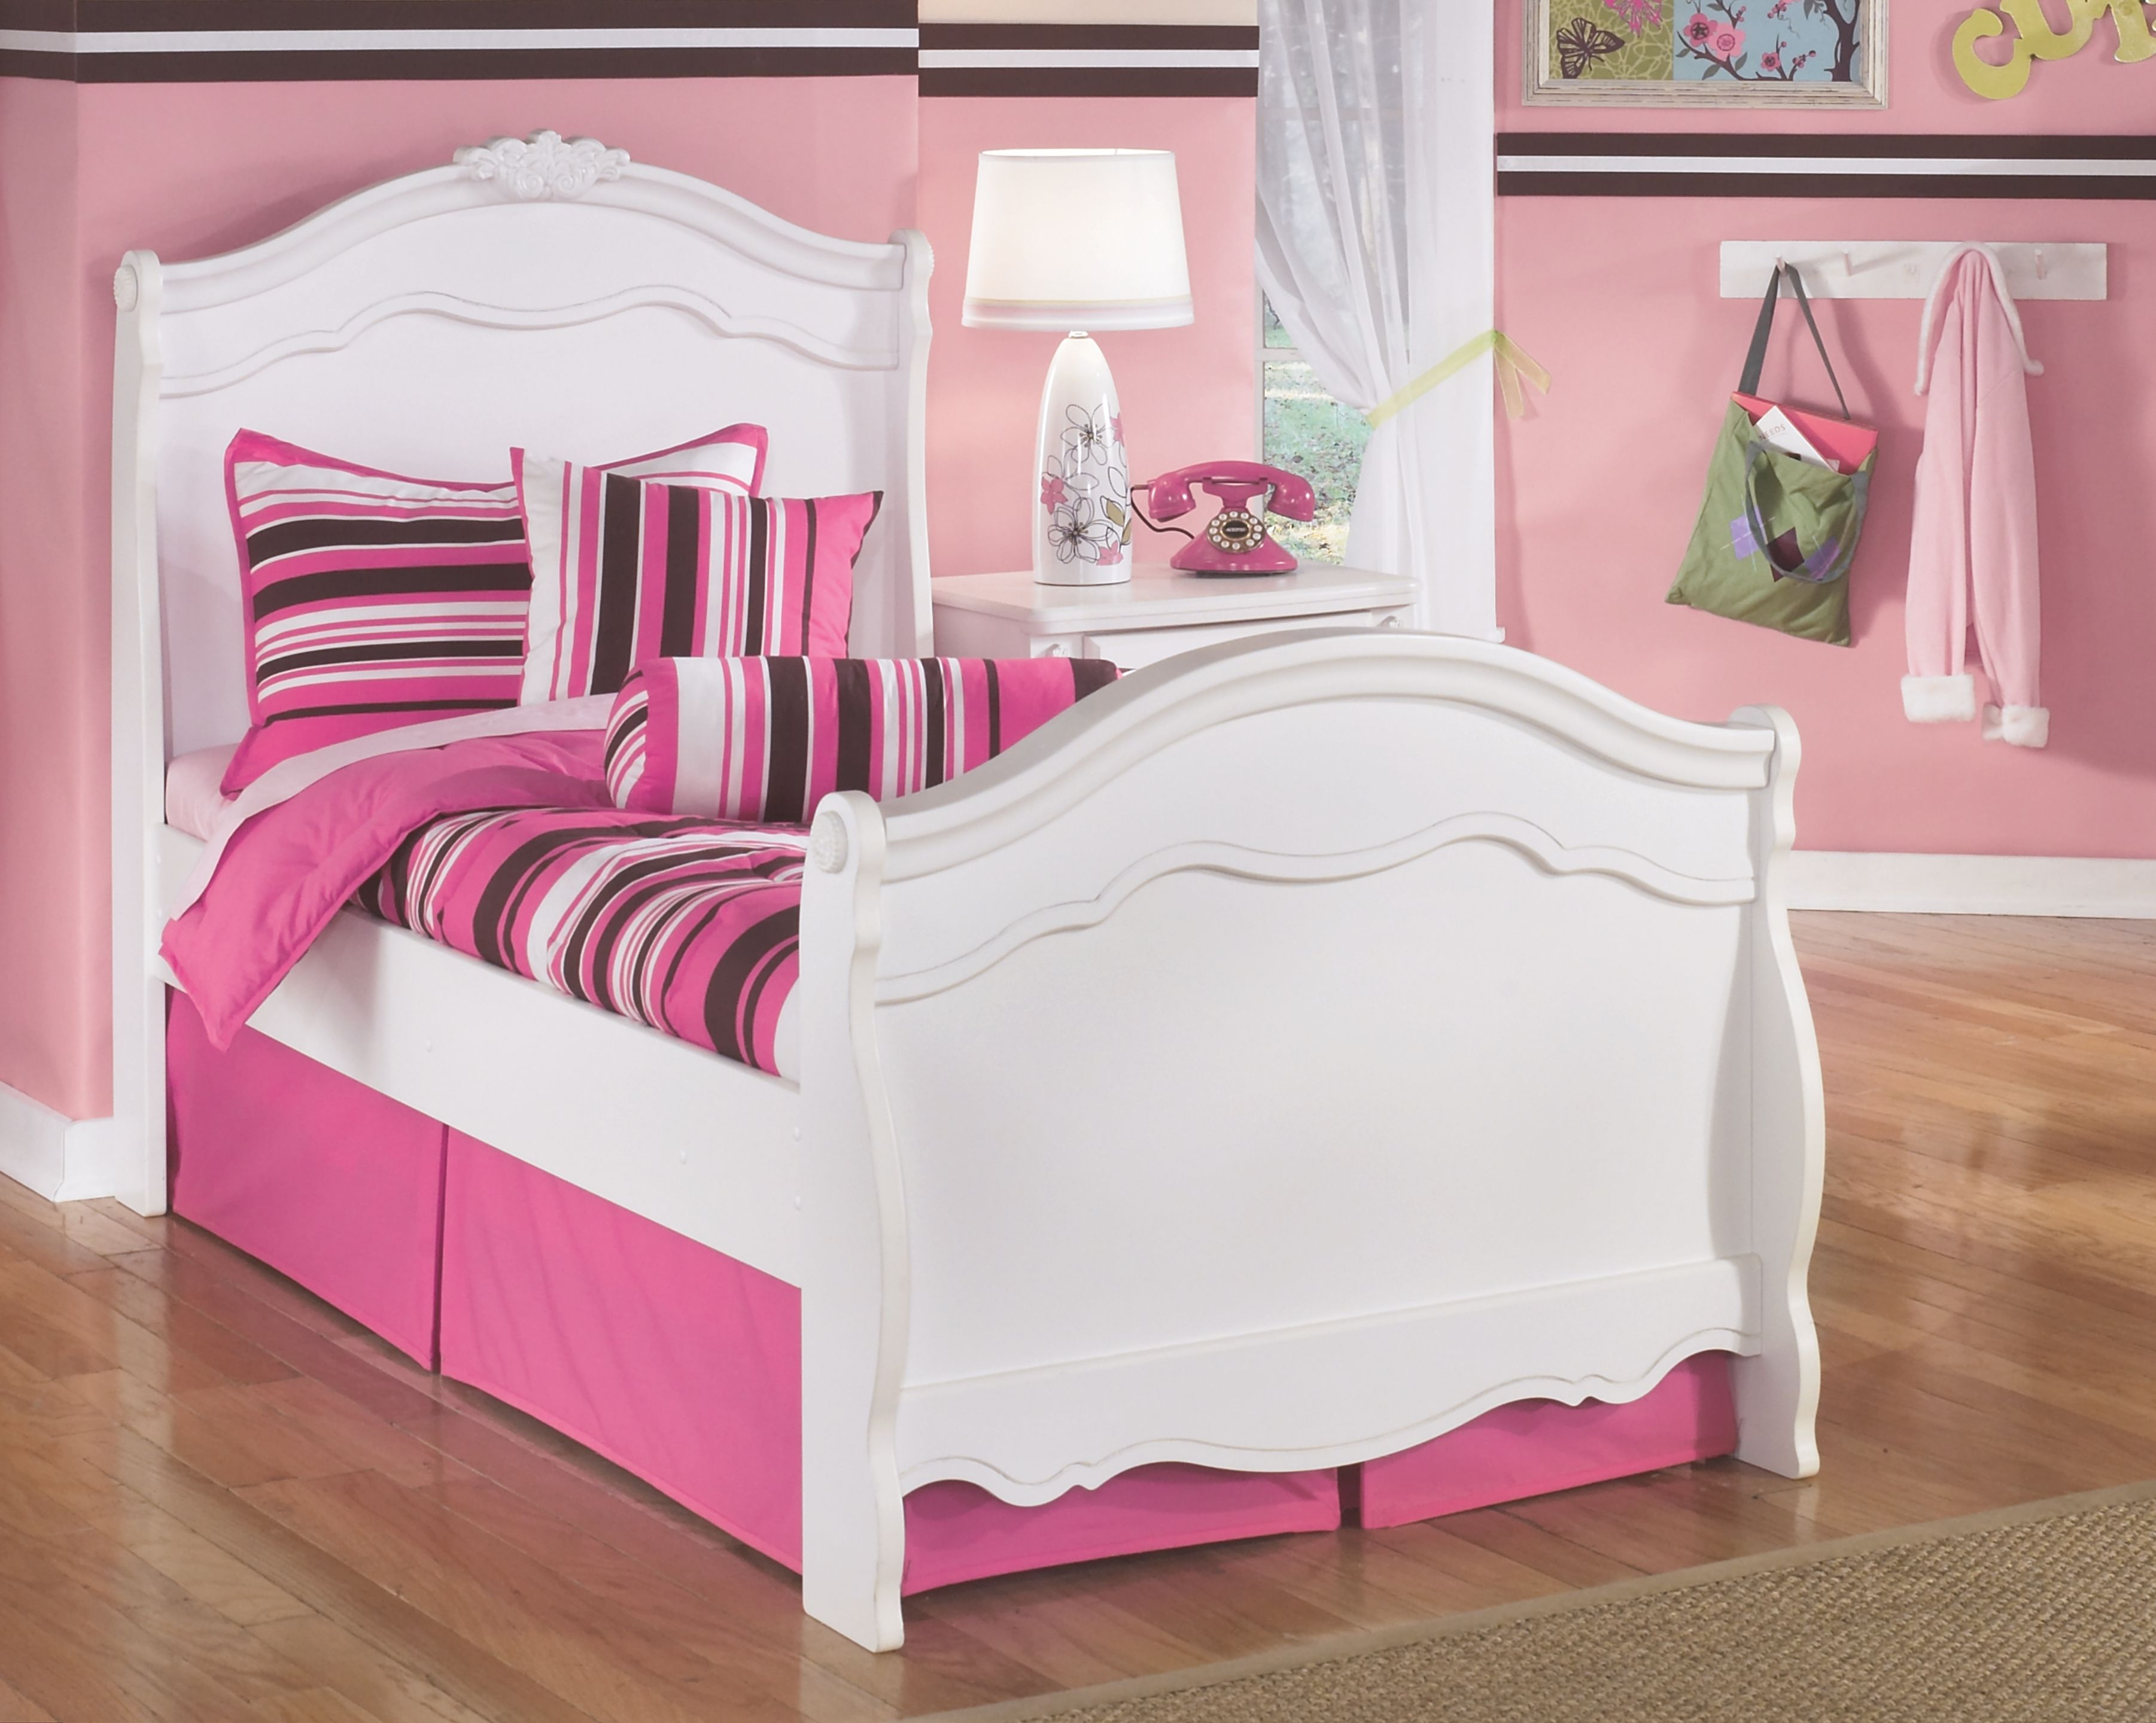 Exquisite Twin Sleigh Bed Twin sleigh bed, Ashley furniture